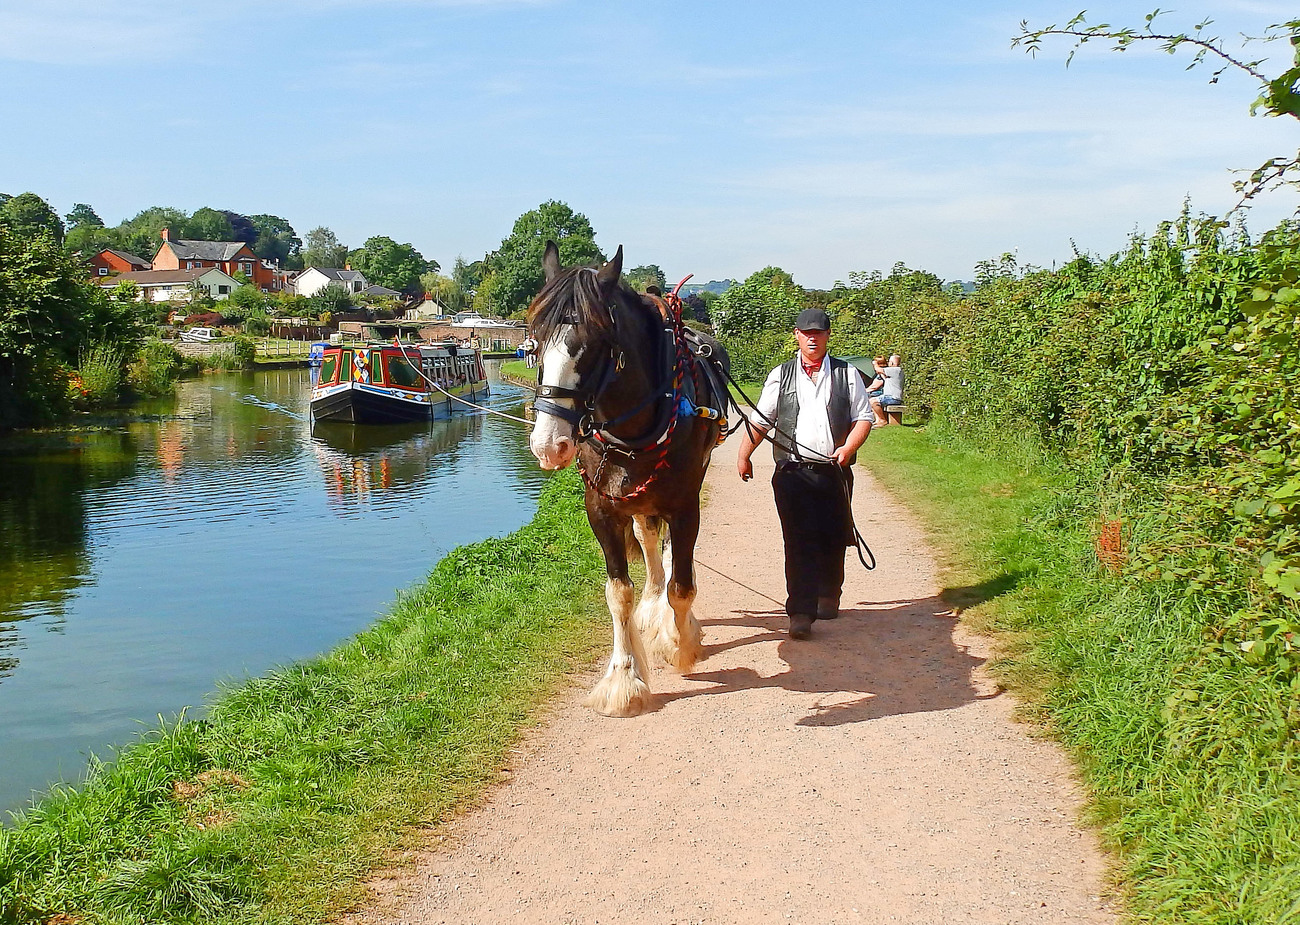 Off along the canal.